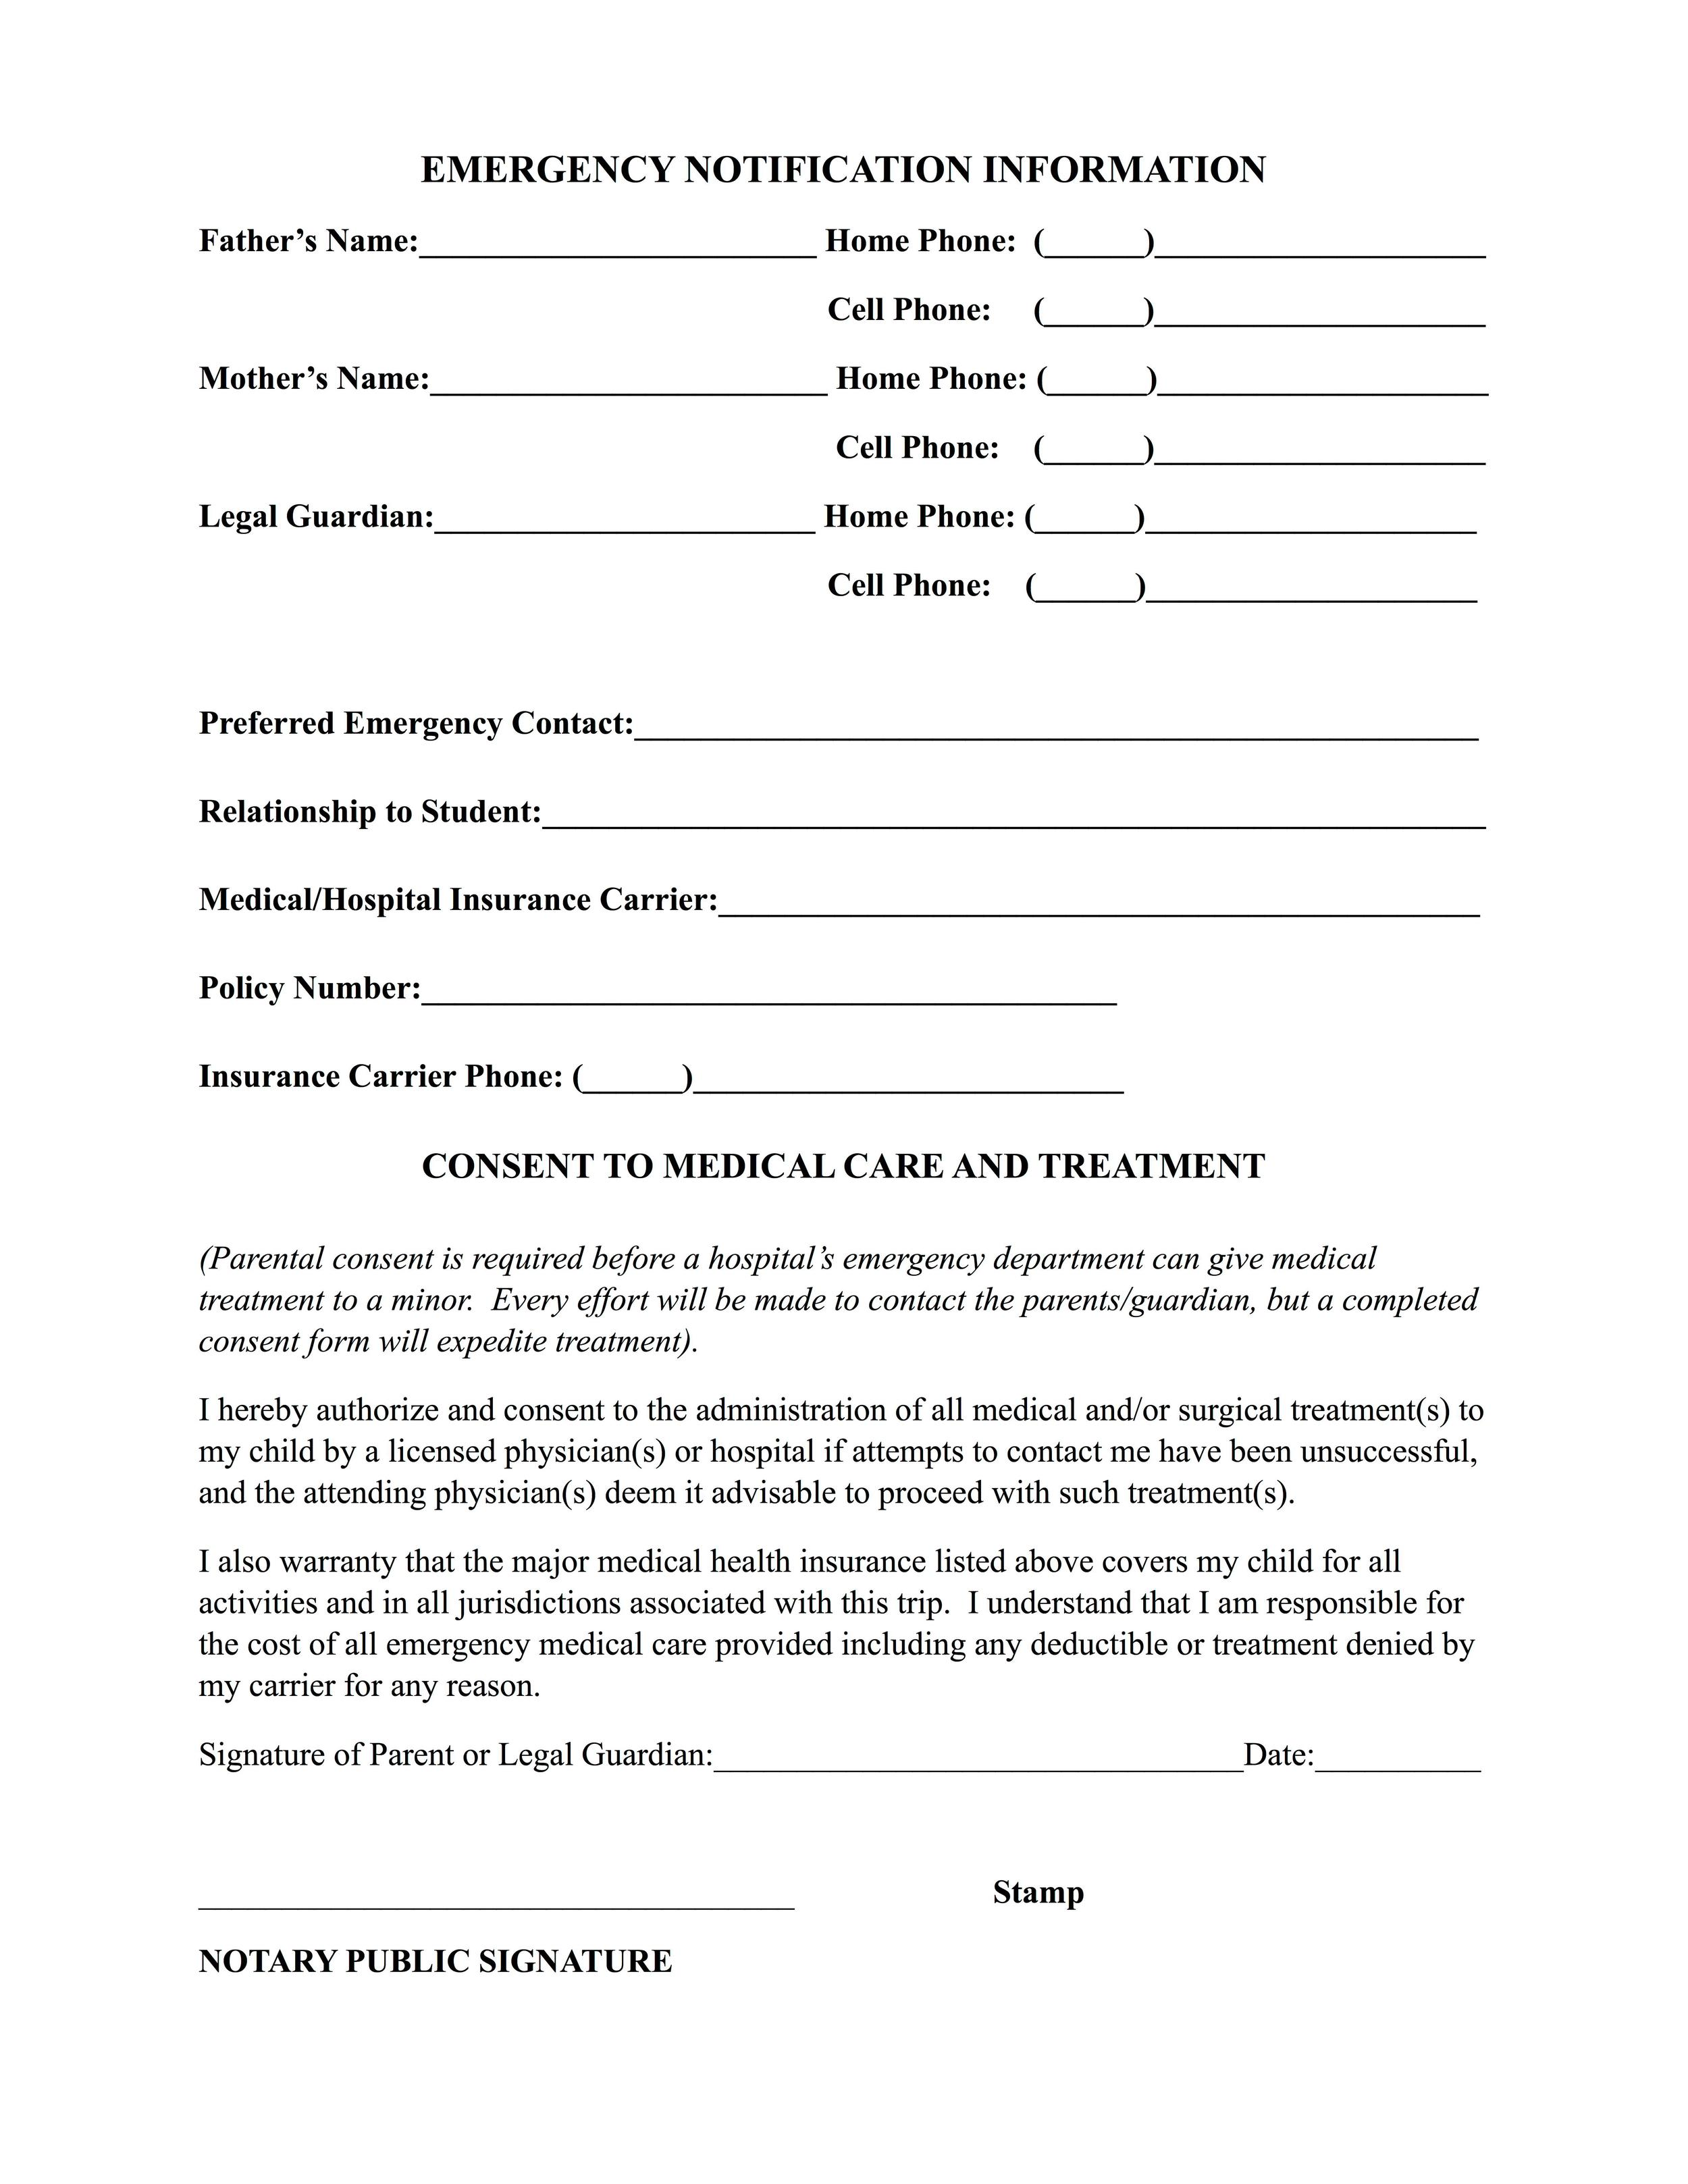 Medical Form Page 2